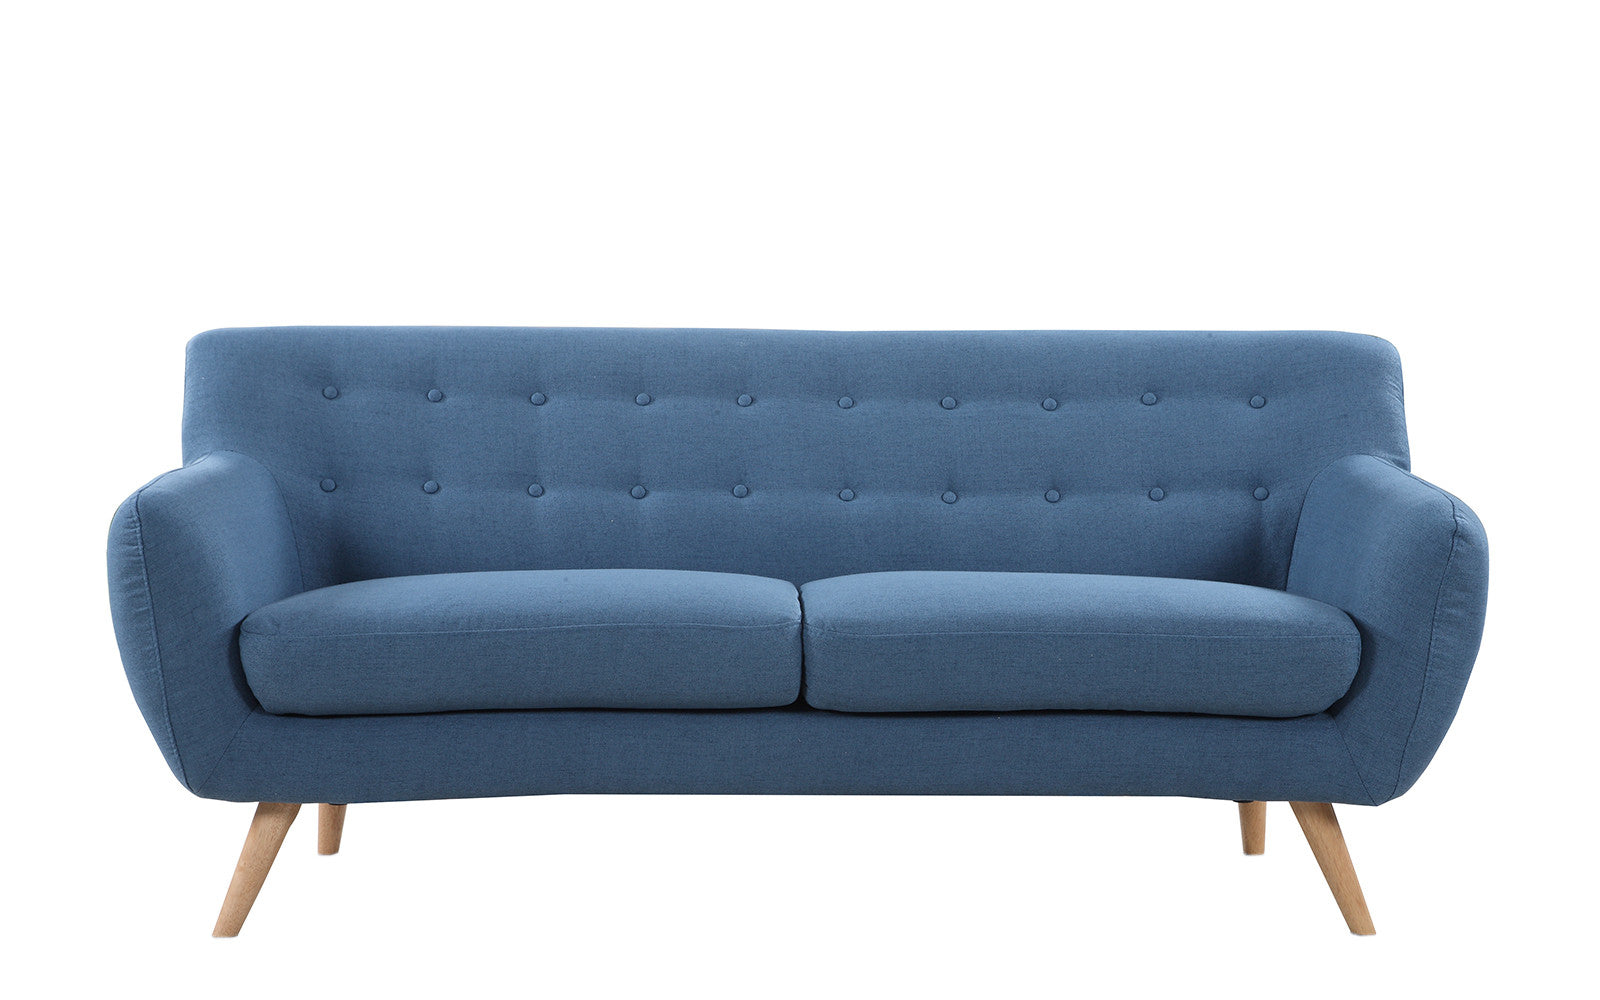 Marvelous ... Nico Mid Century Modern Fabric Sofa In Blue